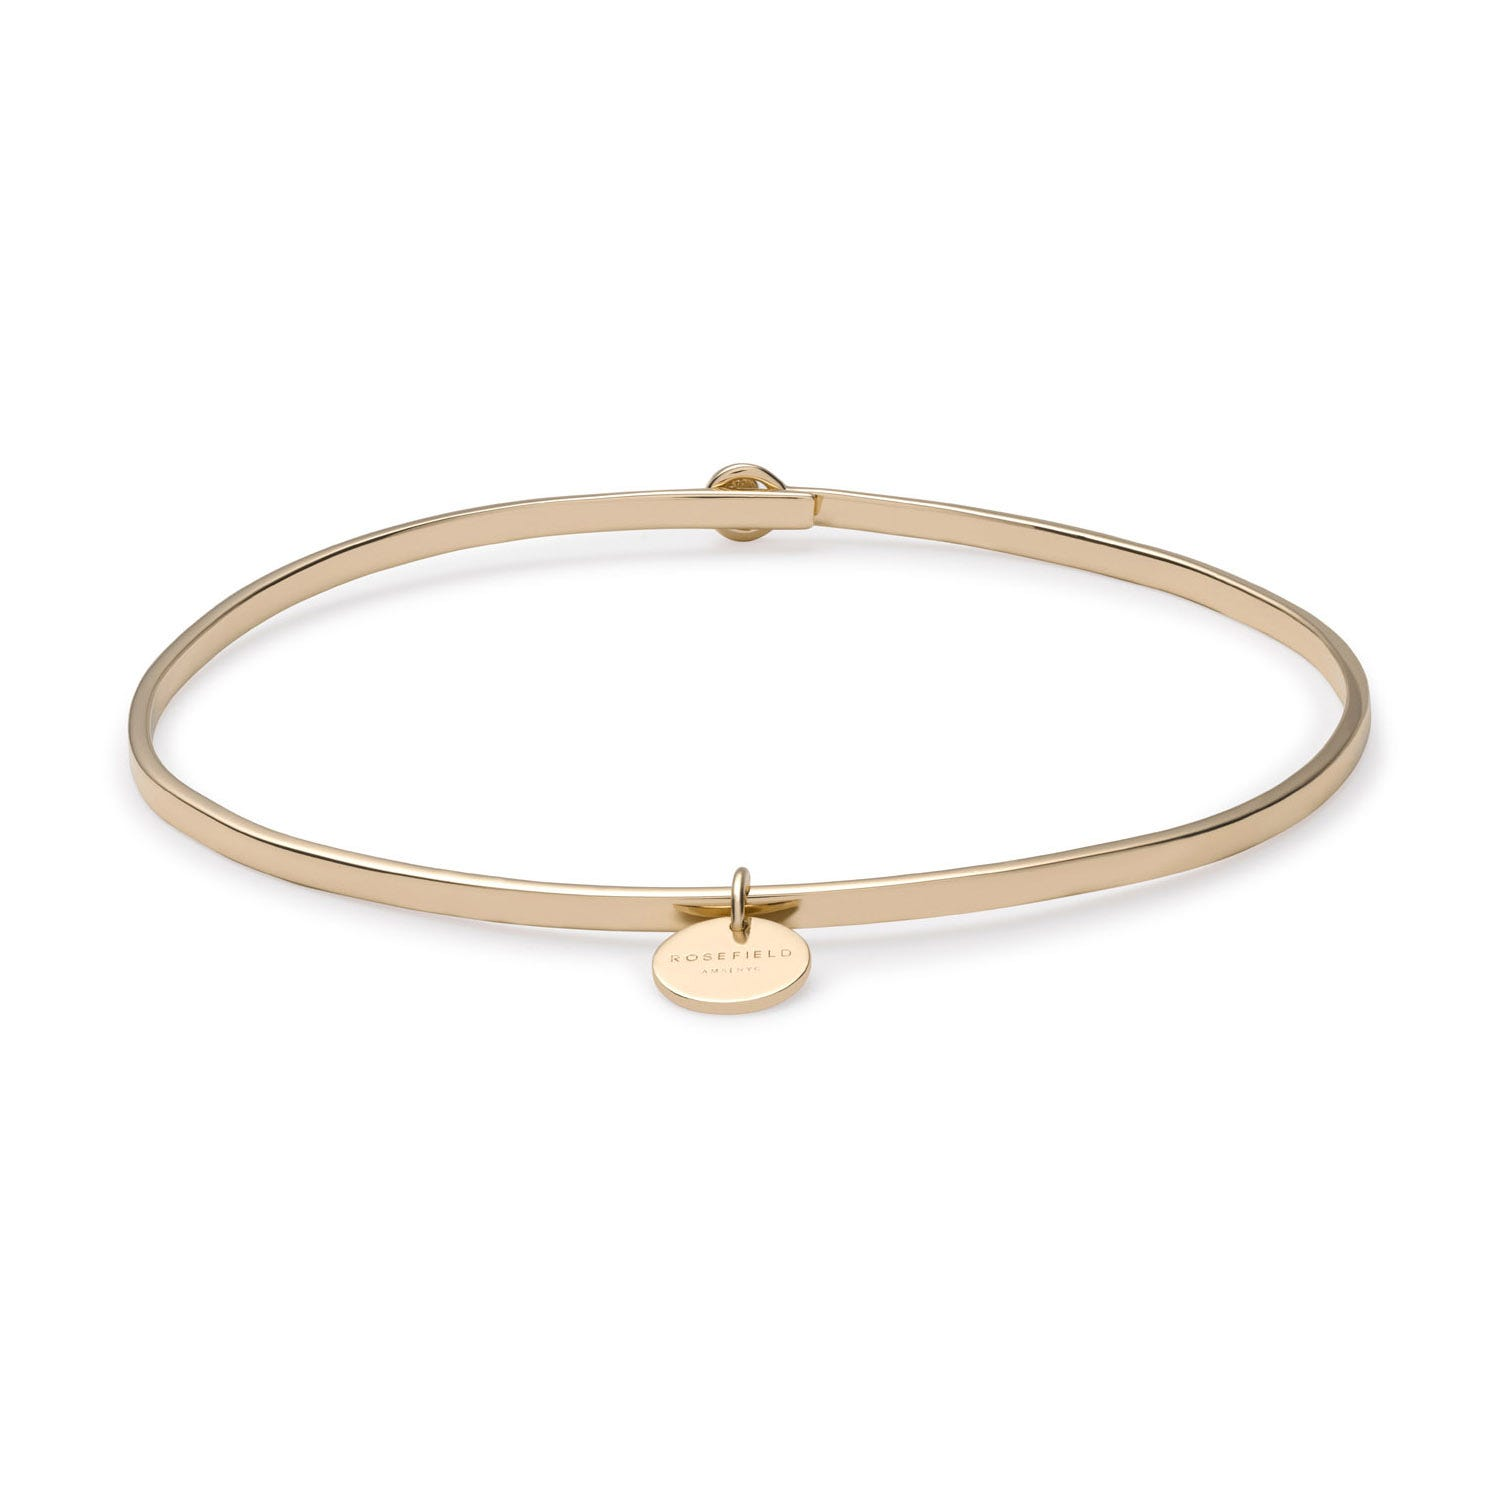 Rosefield Wooster Yellow Gold Plated Charm Bangle (Small)